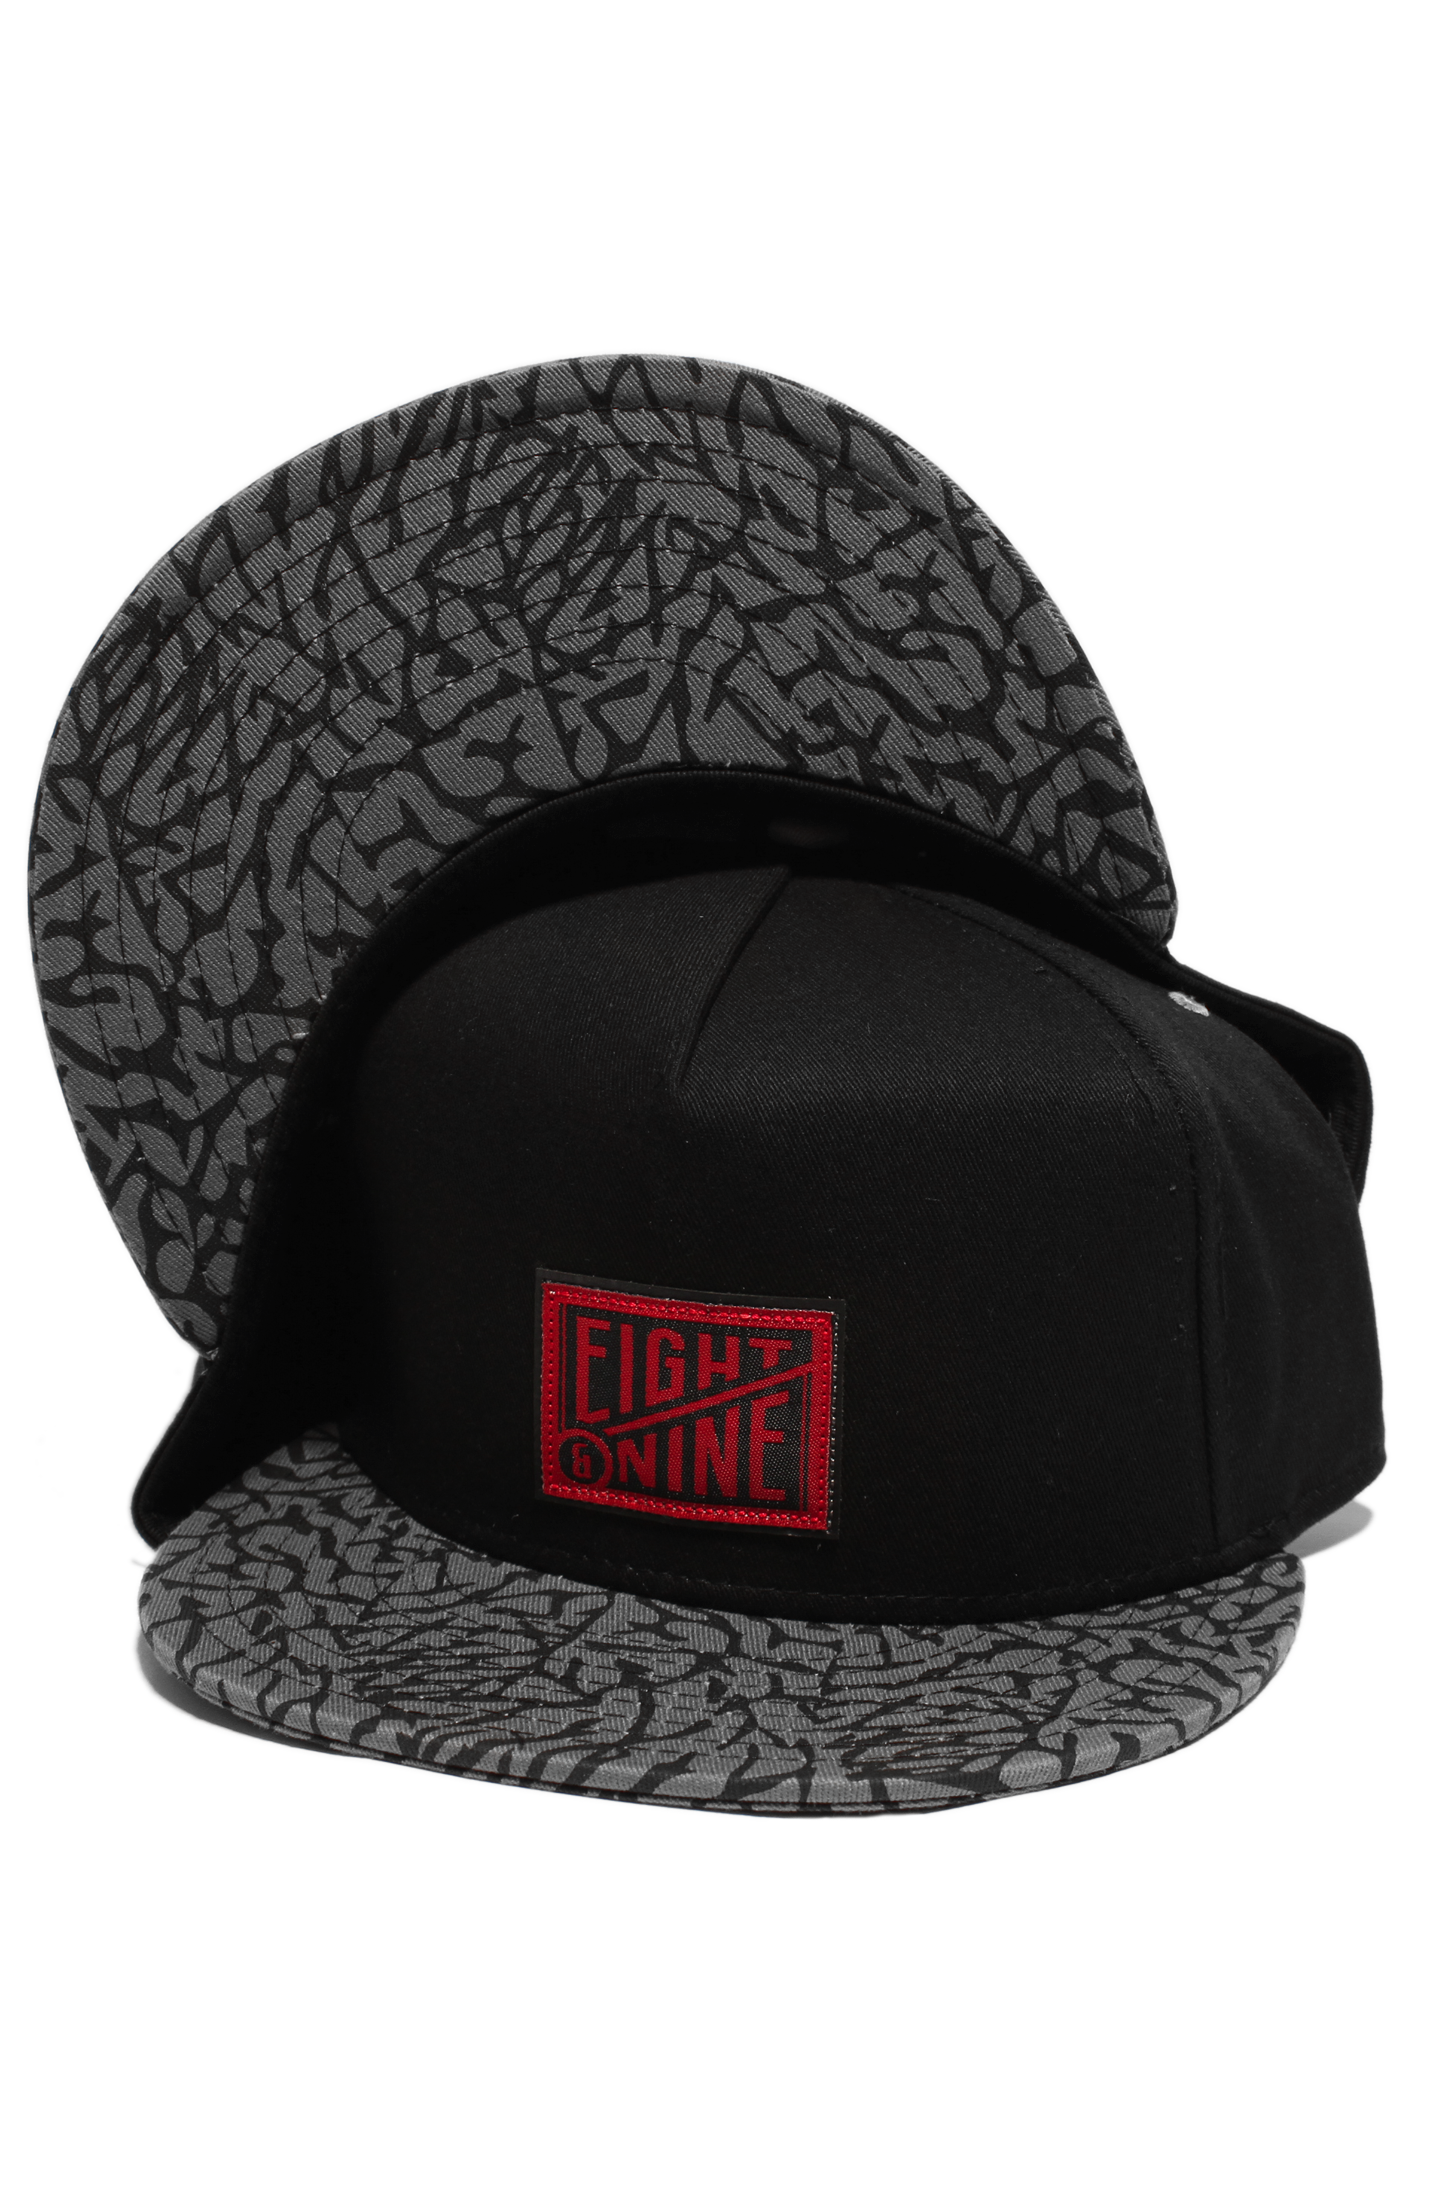 5772da39088 Strapback Hat to match Jordan Black Cement 3